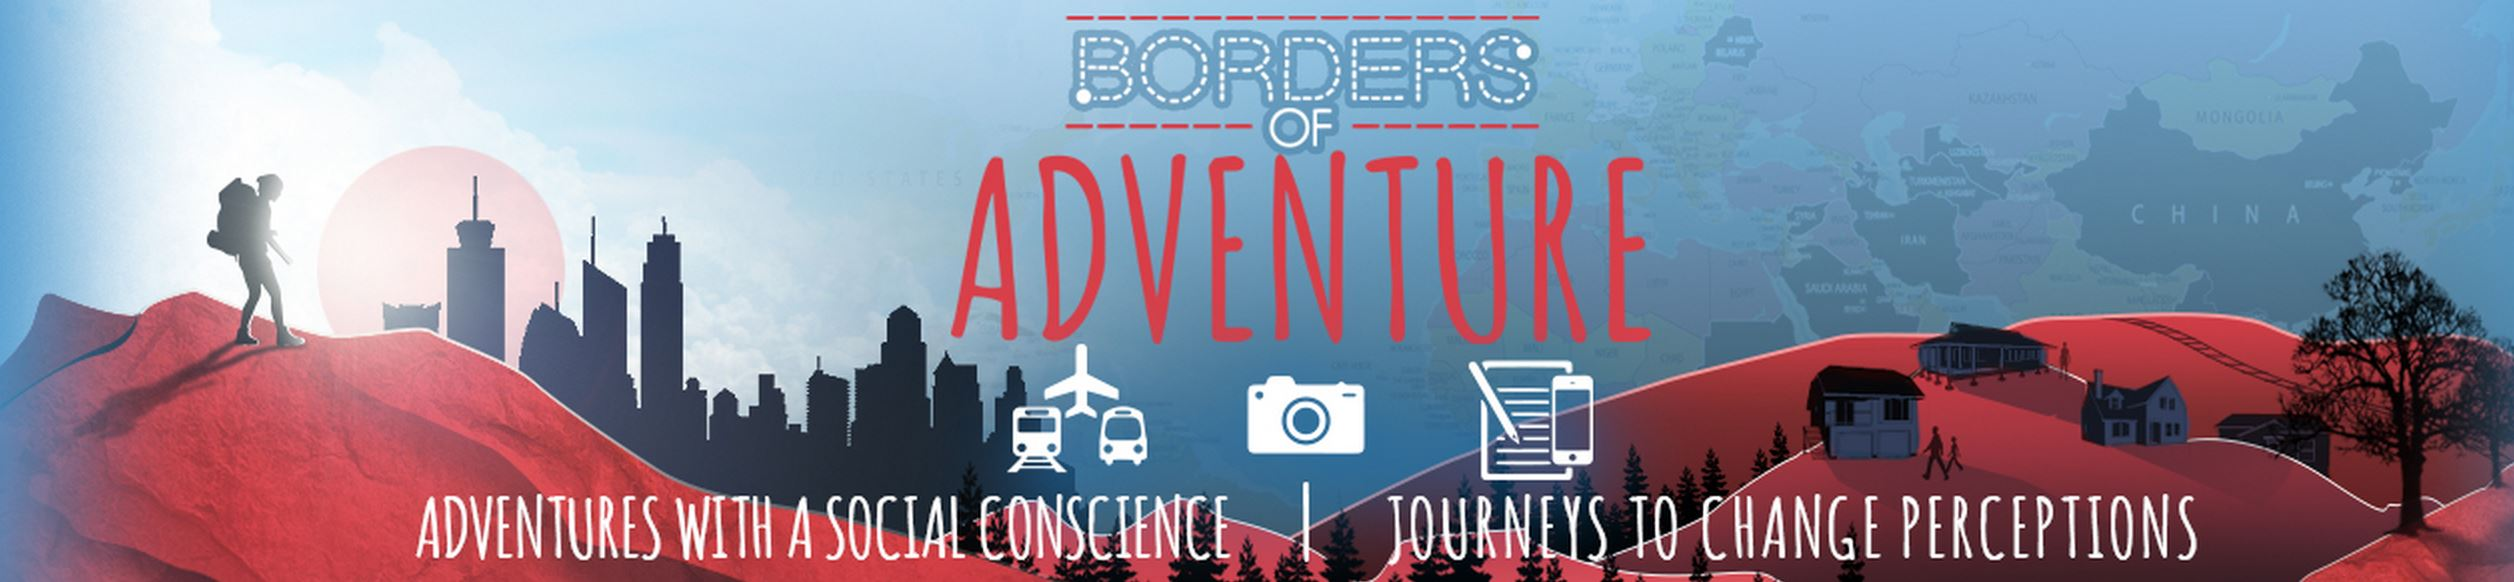 Borders of Adventure is a Top 100 Travel Blog